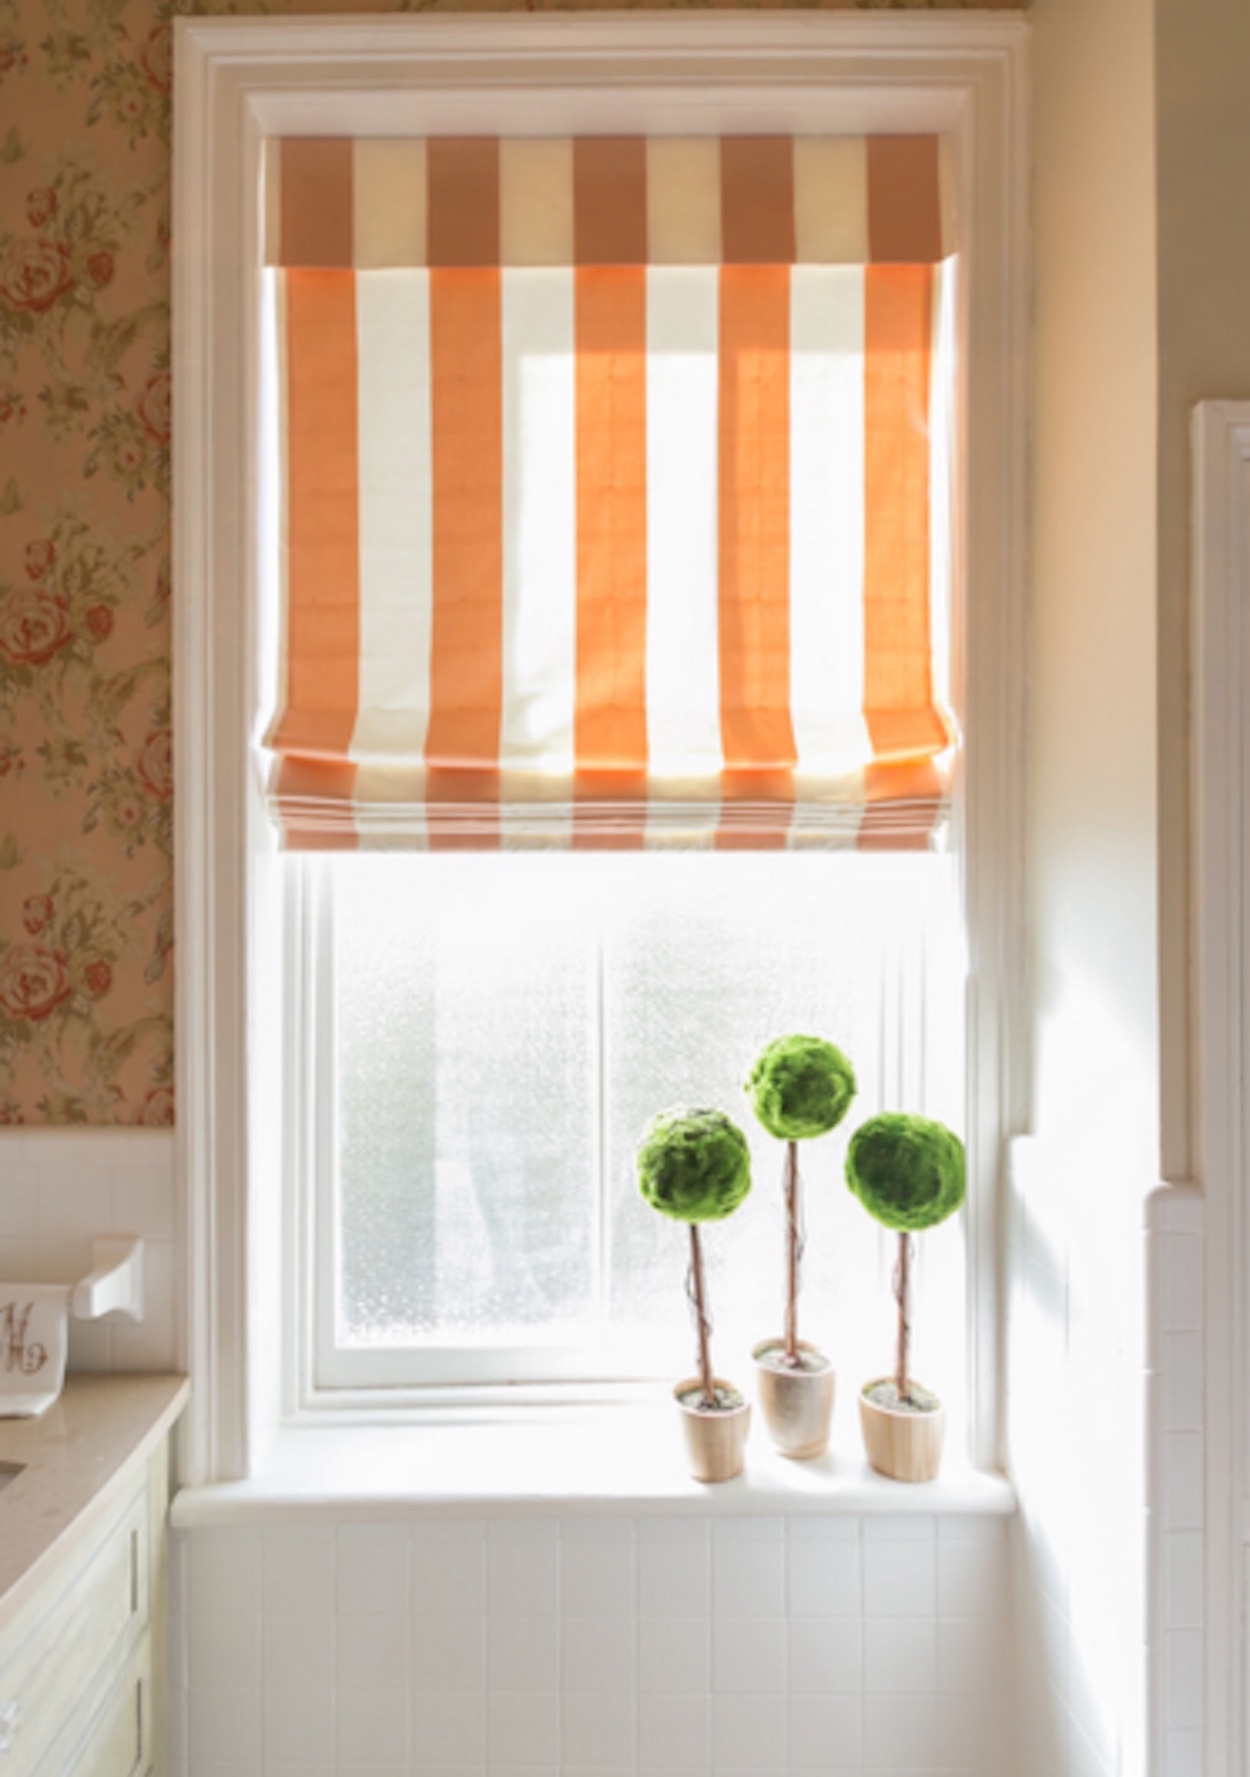 Unique Bathroom Window Treatments 11